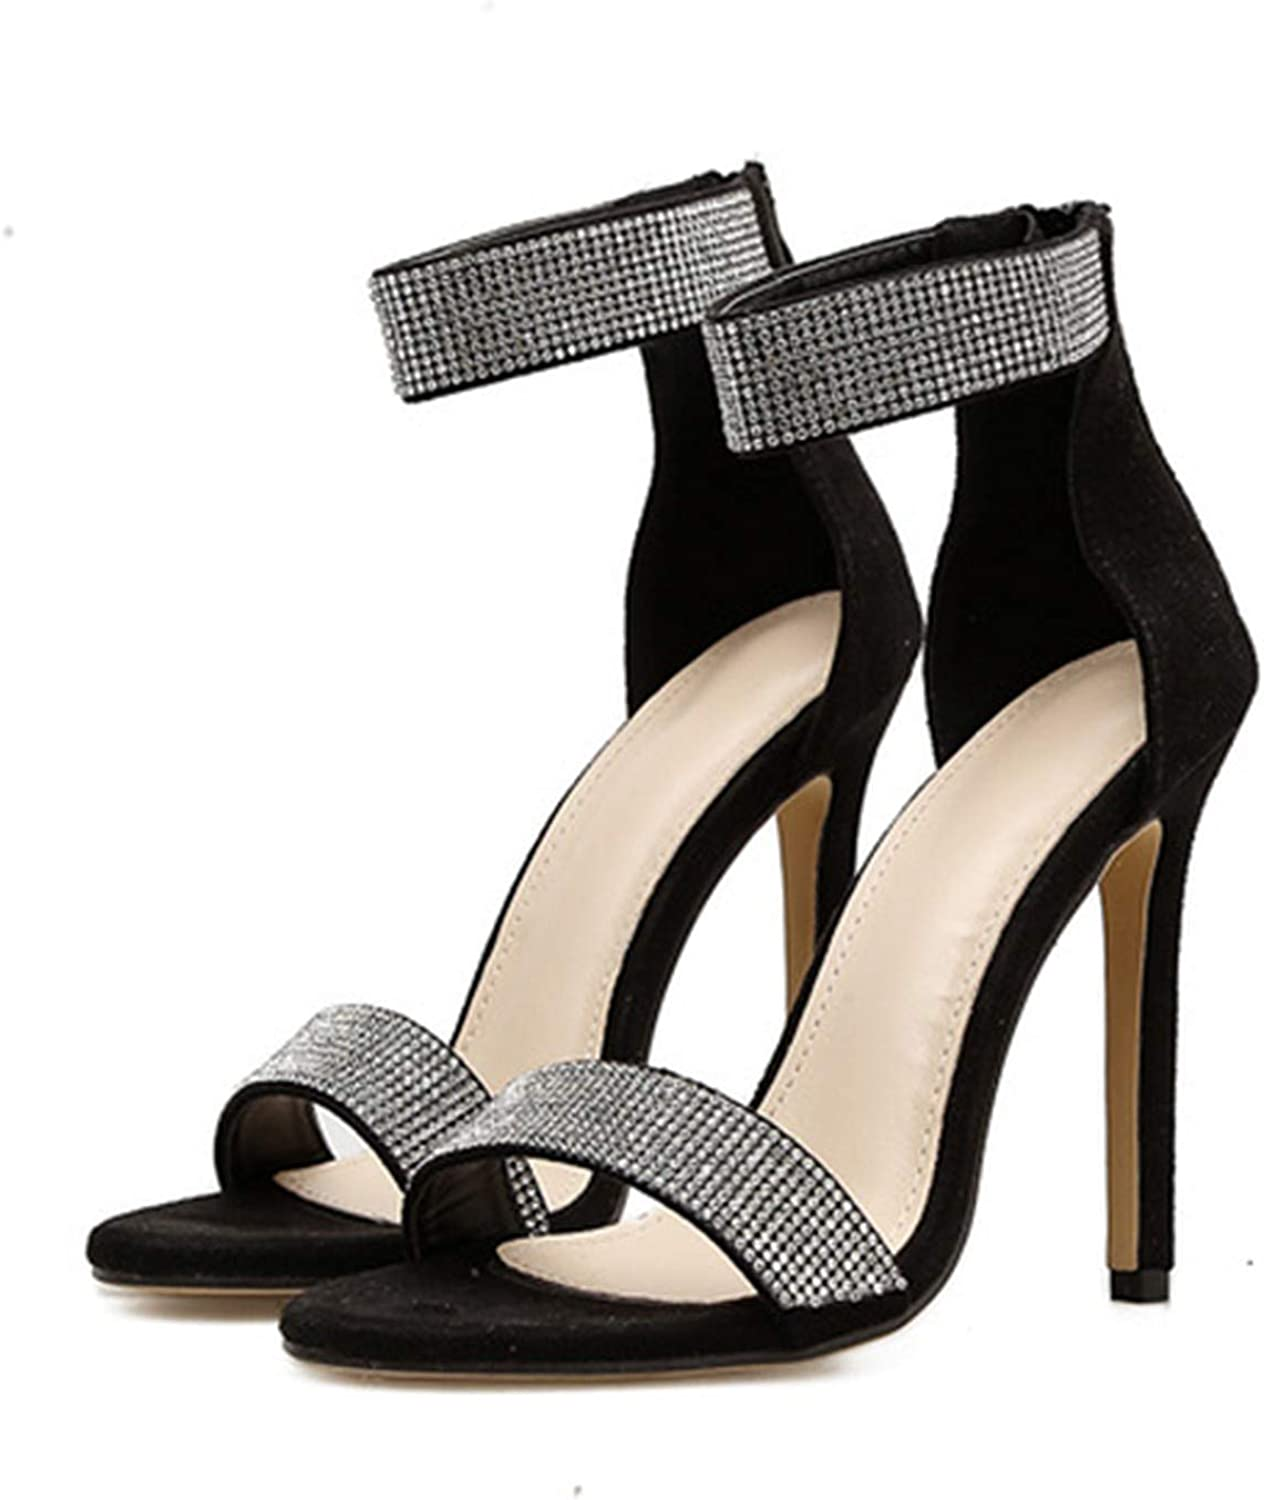 Crystal Heel Sandals Brand Design Sexy Bling High Heel Women Sandals Elegant Party shoes,Black,4